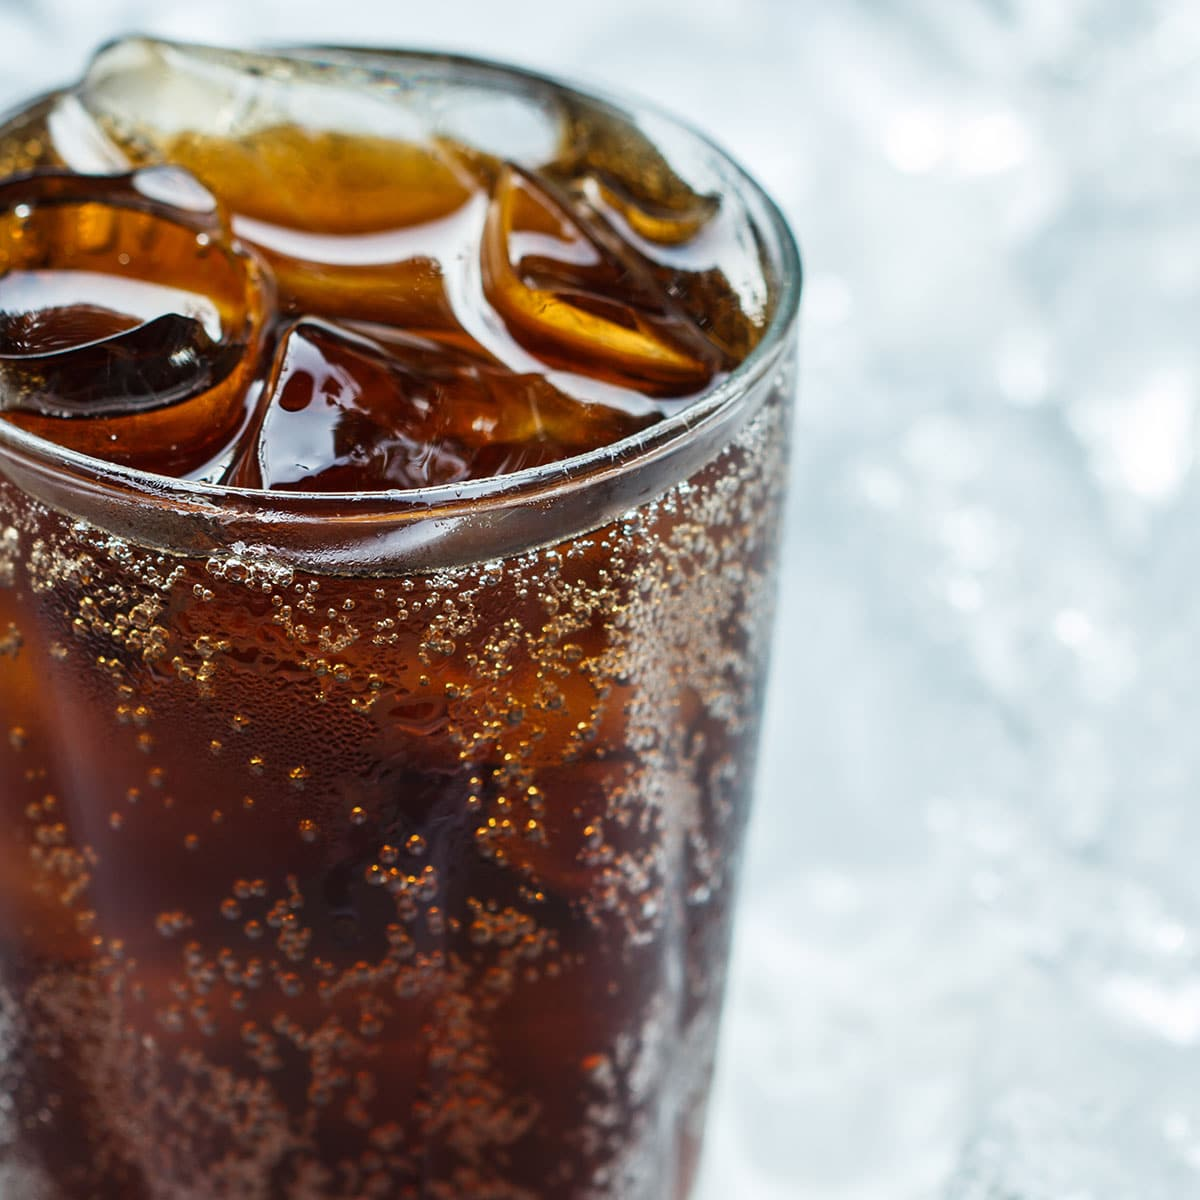 Picture of a glass of cola with ice for National Have a Coke Day.